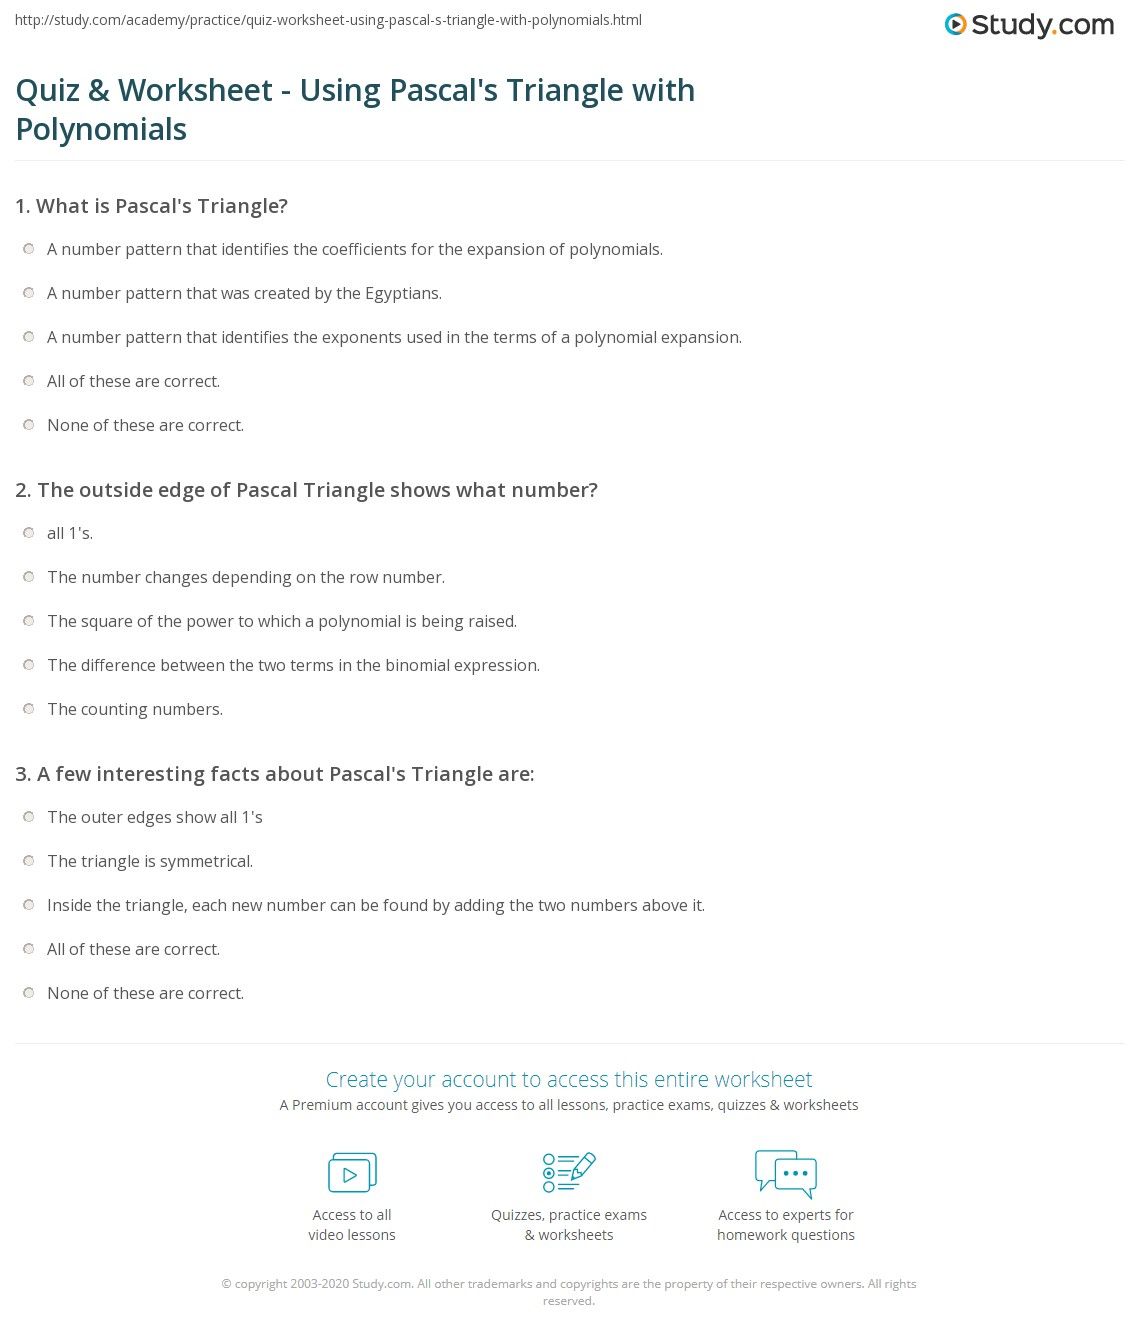 quiz worksheet using pascal 39 s triangle with polynomials. Black Bedroom Furniture Sets. Home Design Ideas